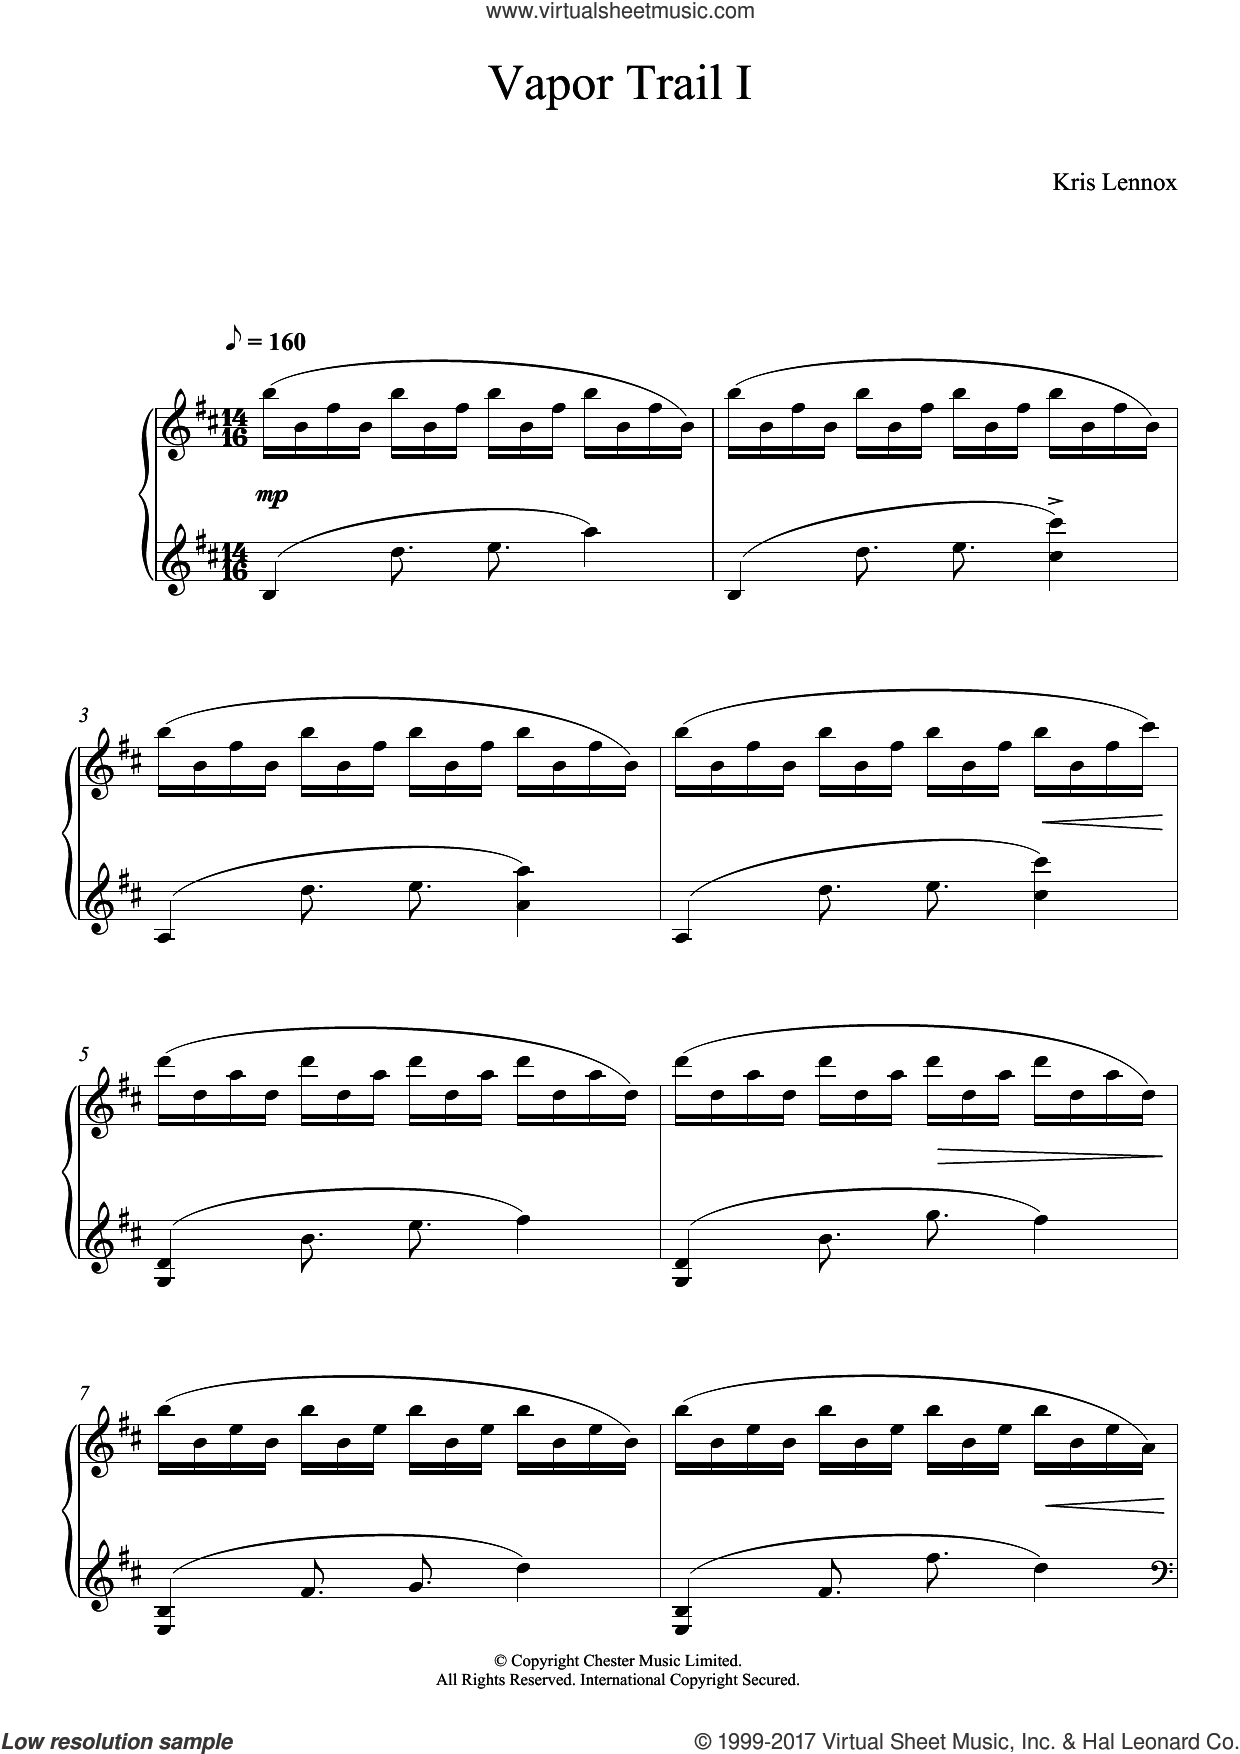 Vapor Trails I sheet music for piano solo by Kris Lennox, classical score, intermediate skill level